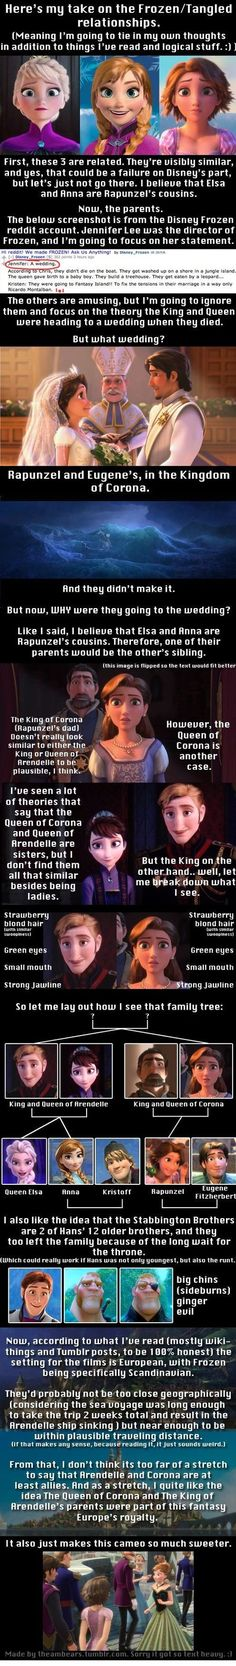 Super Ideas for funny disney quotes mind blown frozen Disney Pixar, Gif Disney, Disney Facts, Disney Tangled, Disney And Dreamworks, Disney Love, Disney Magic, Walt Disney, Disney Frozen